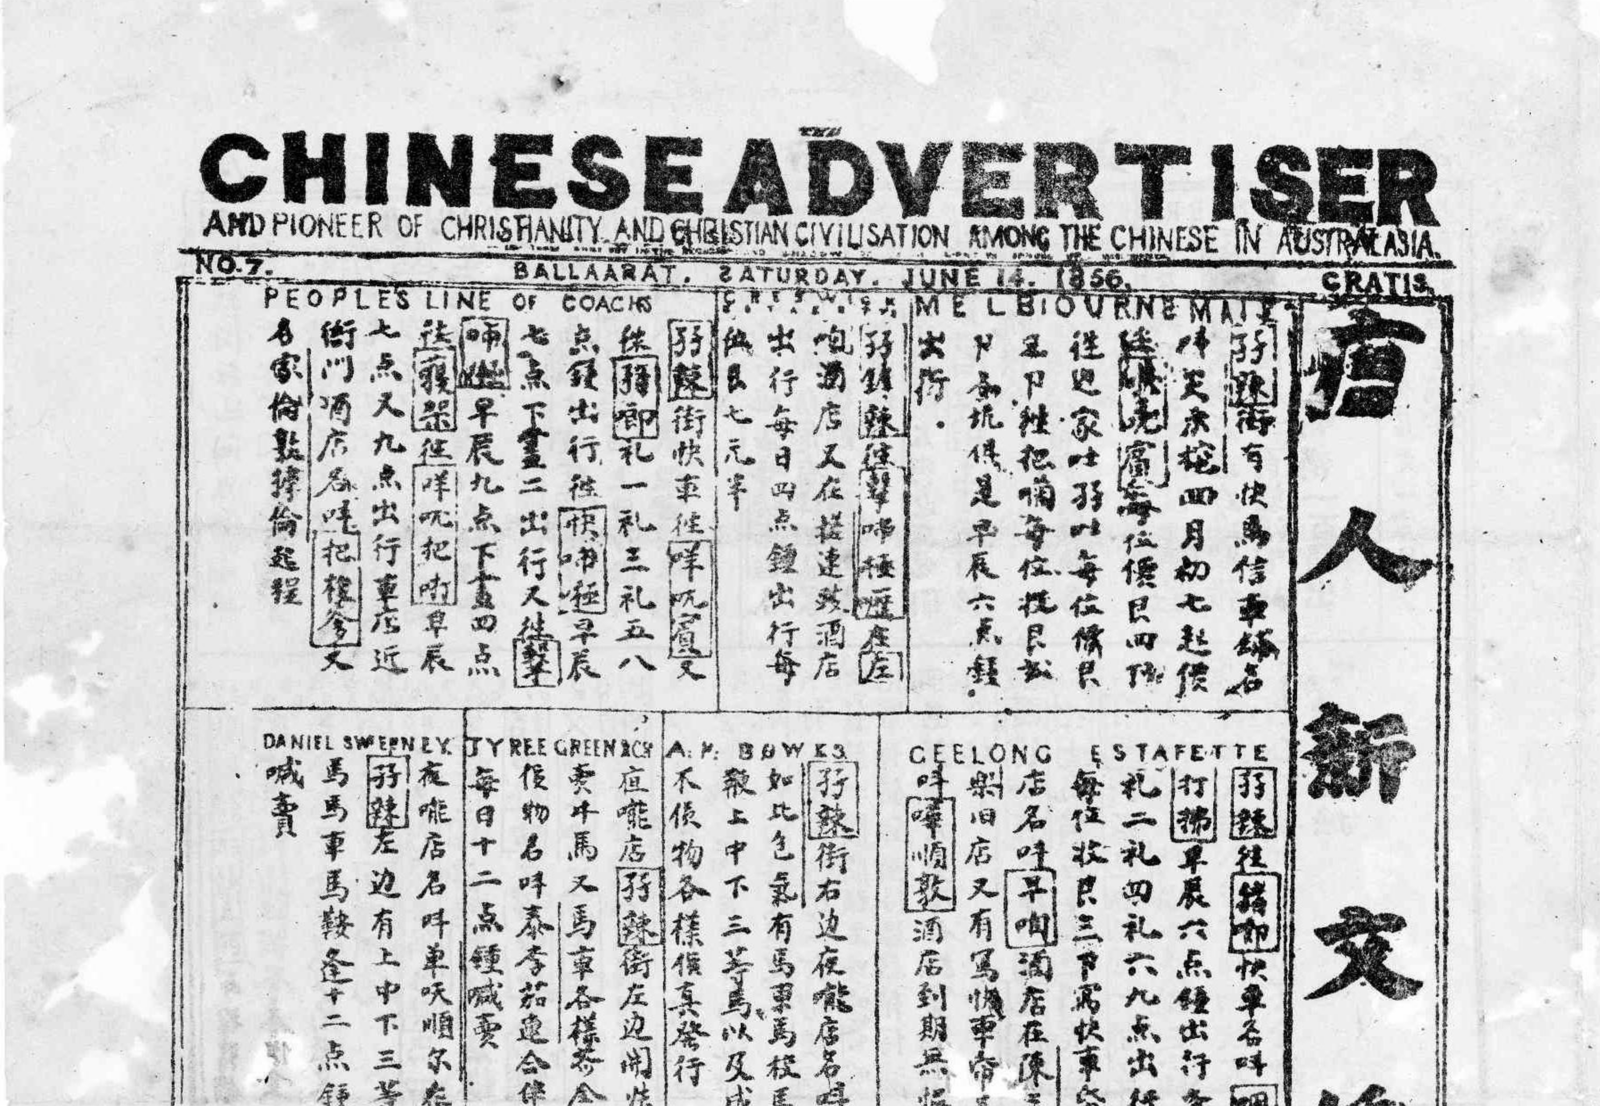 Page of the Chinese Advertiser